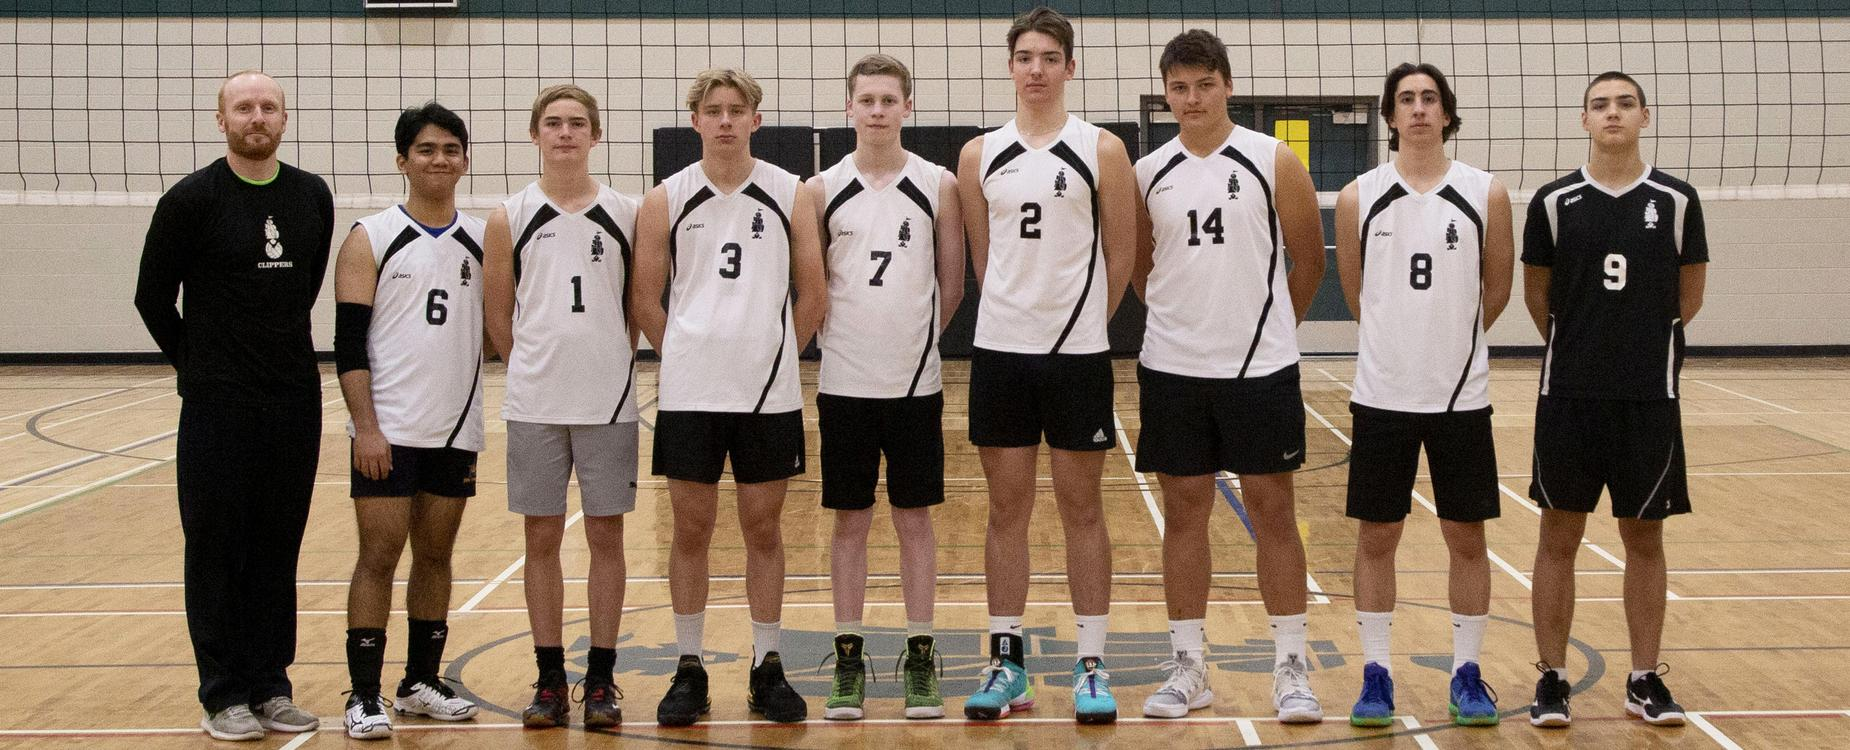 varsity boys volleyball team picture